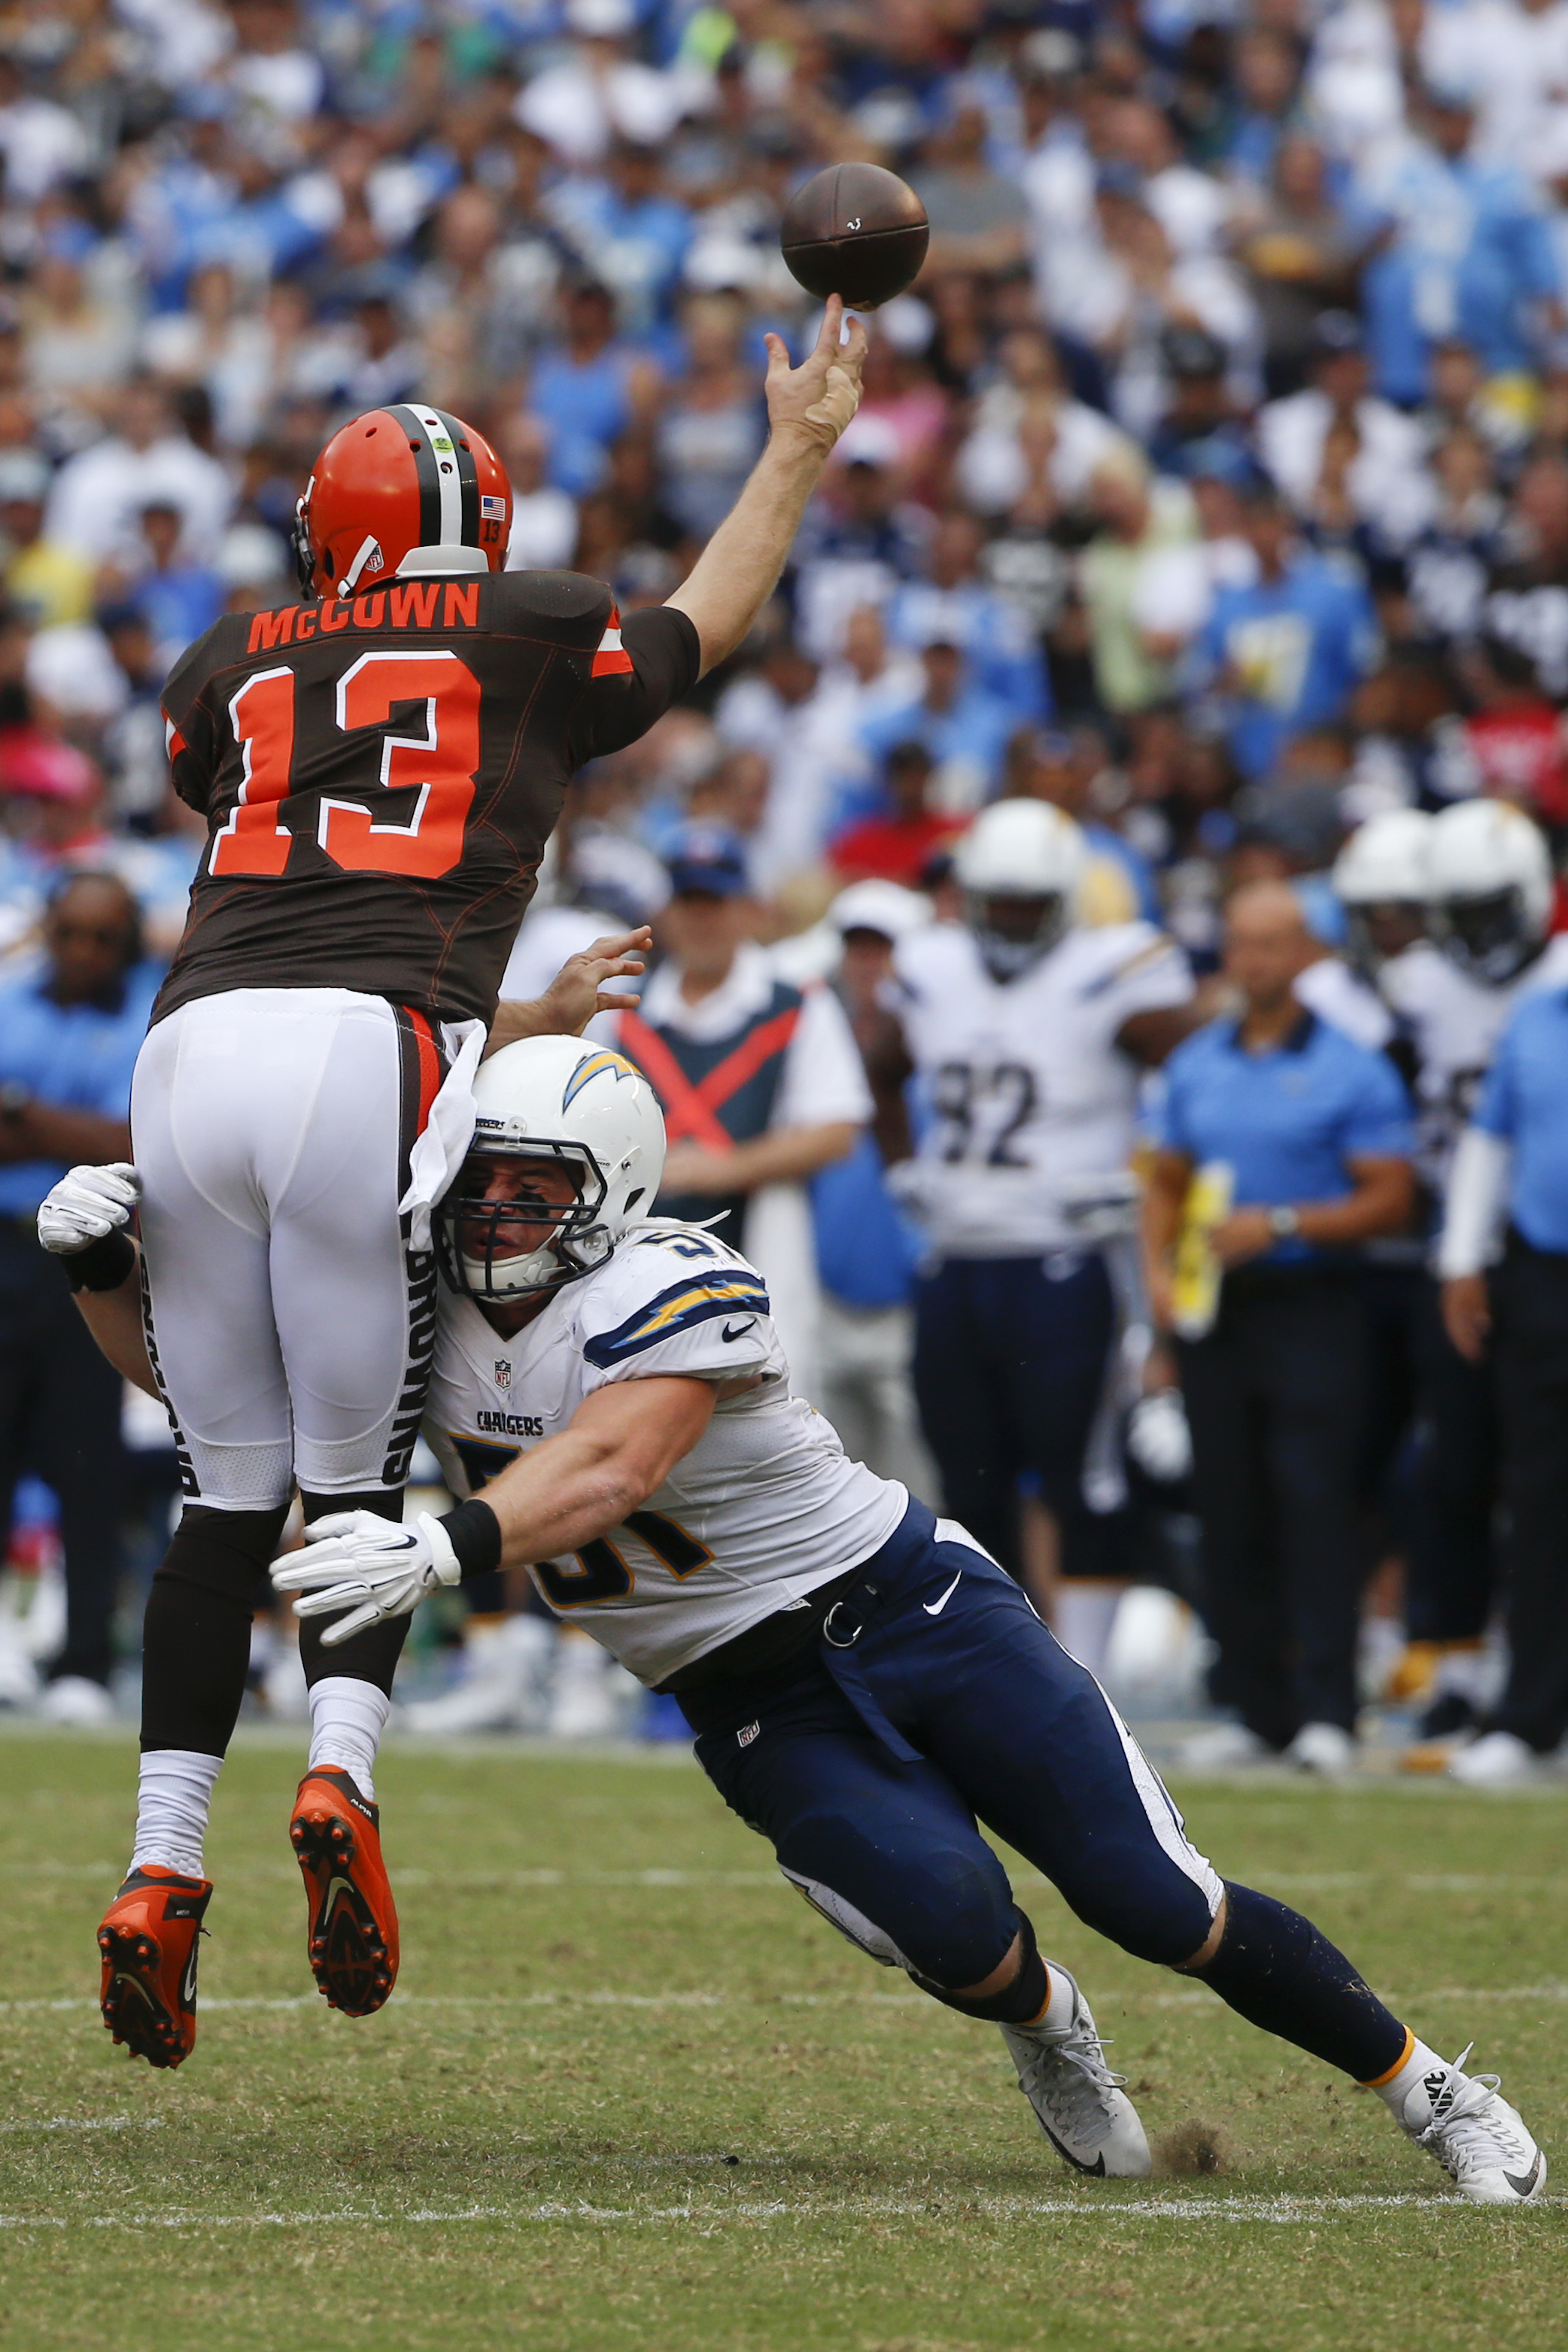 Cleveland Browns quarterback Josh McCown (13) is hit by San Diego Chargers outside linebacker Kyle Emanuel as he throws a pass during the second half in an NFL football game Sunday, Oct. 4, 2015, in San Diego. (AP Photo/Lenny Ignelzi)